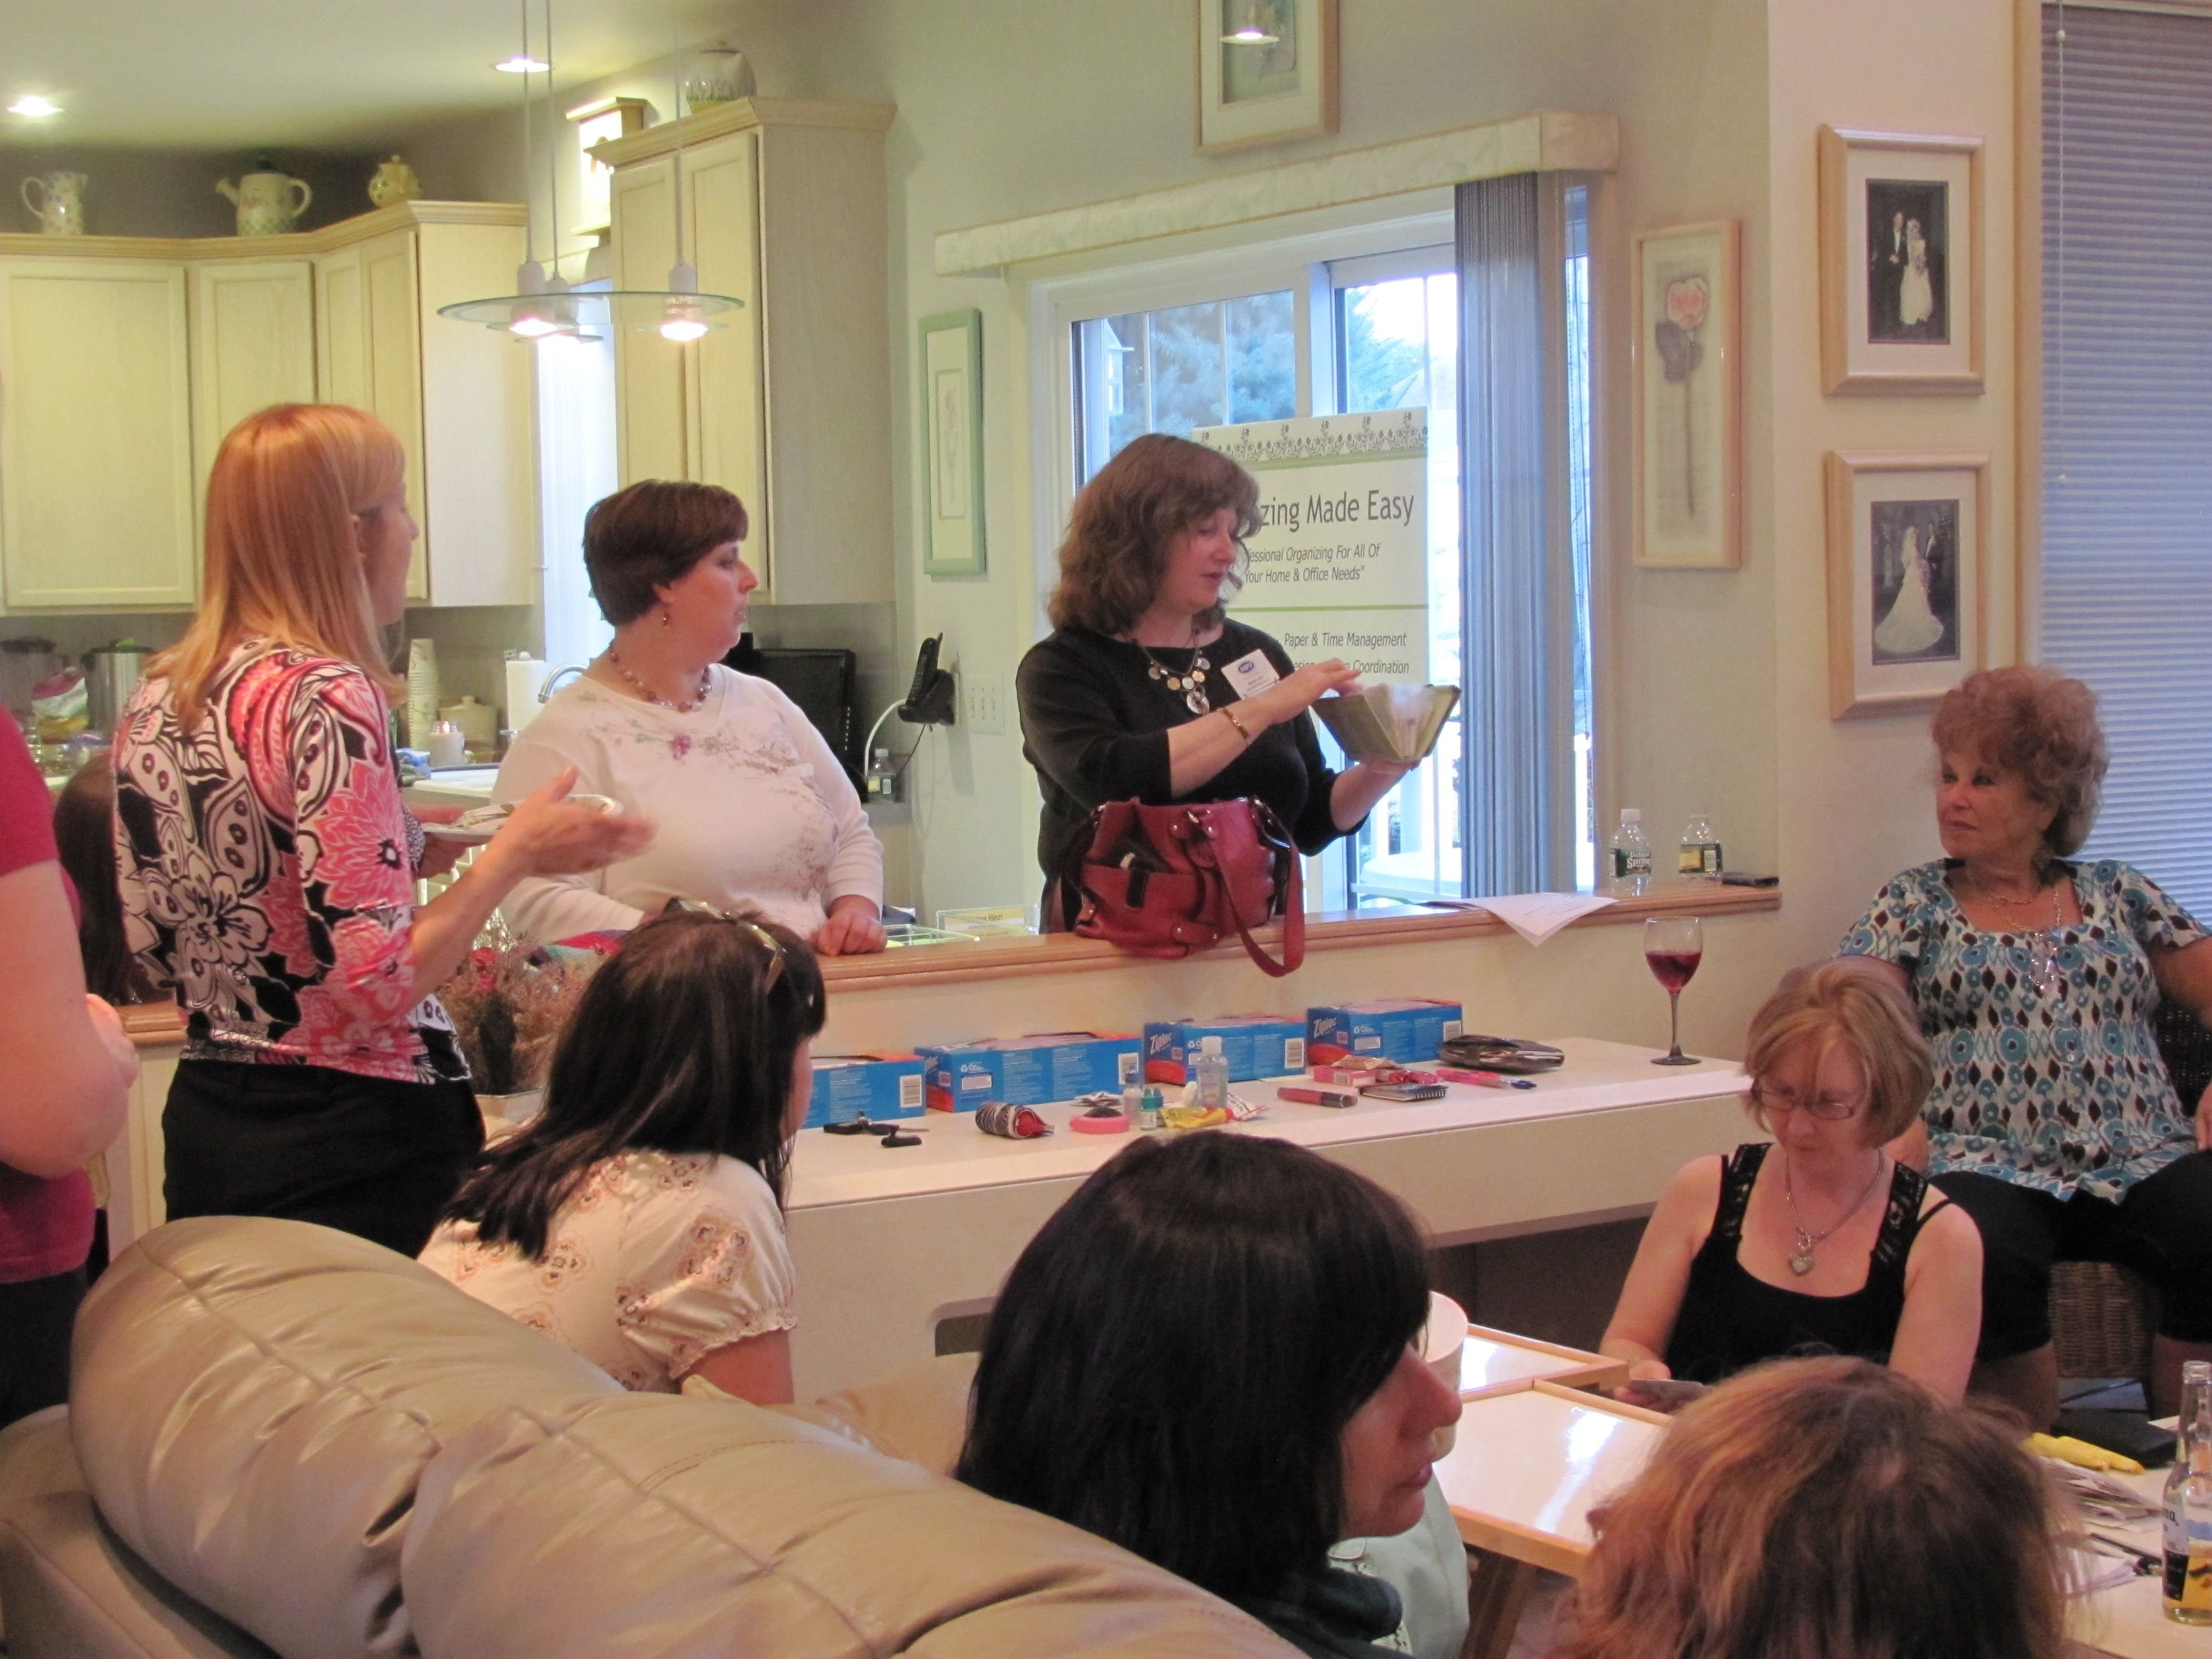 organizing made easy party ladies night out great way to spend